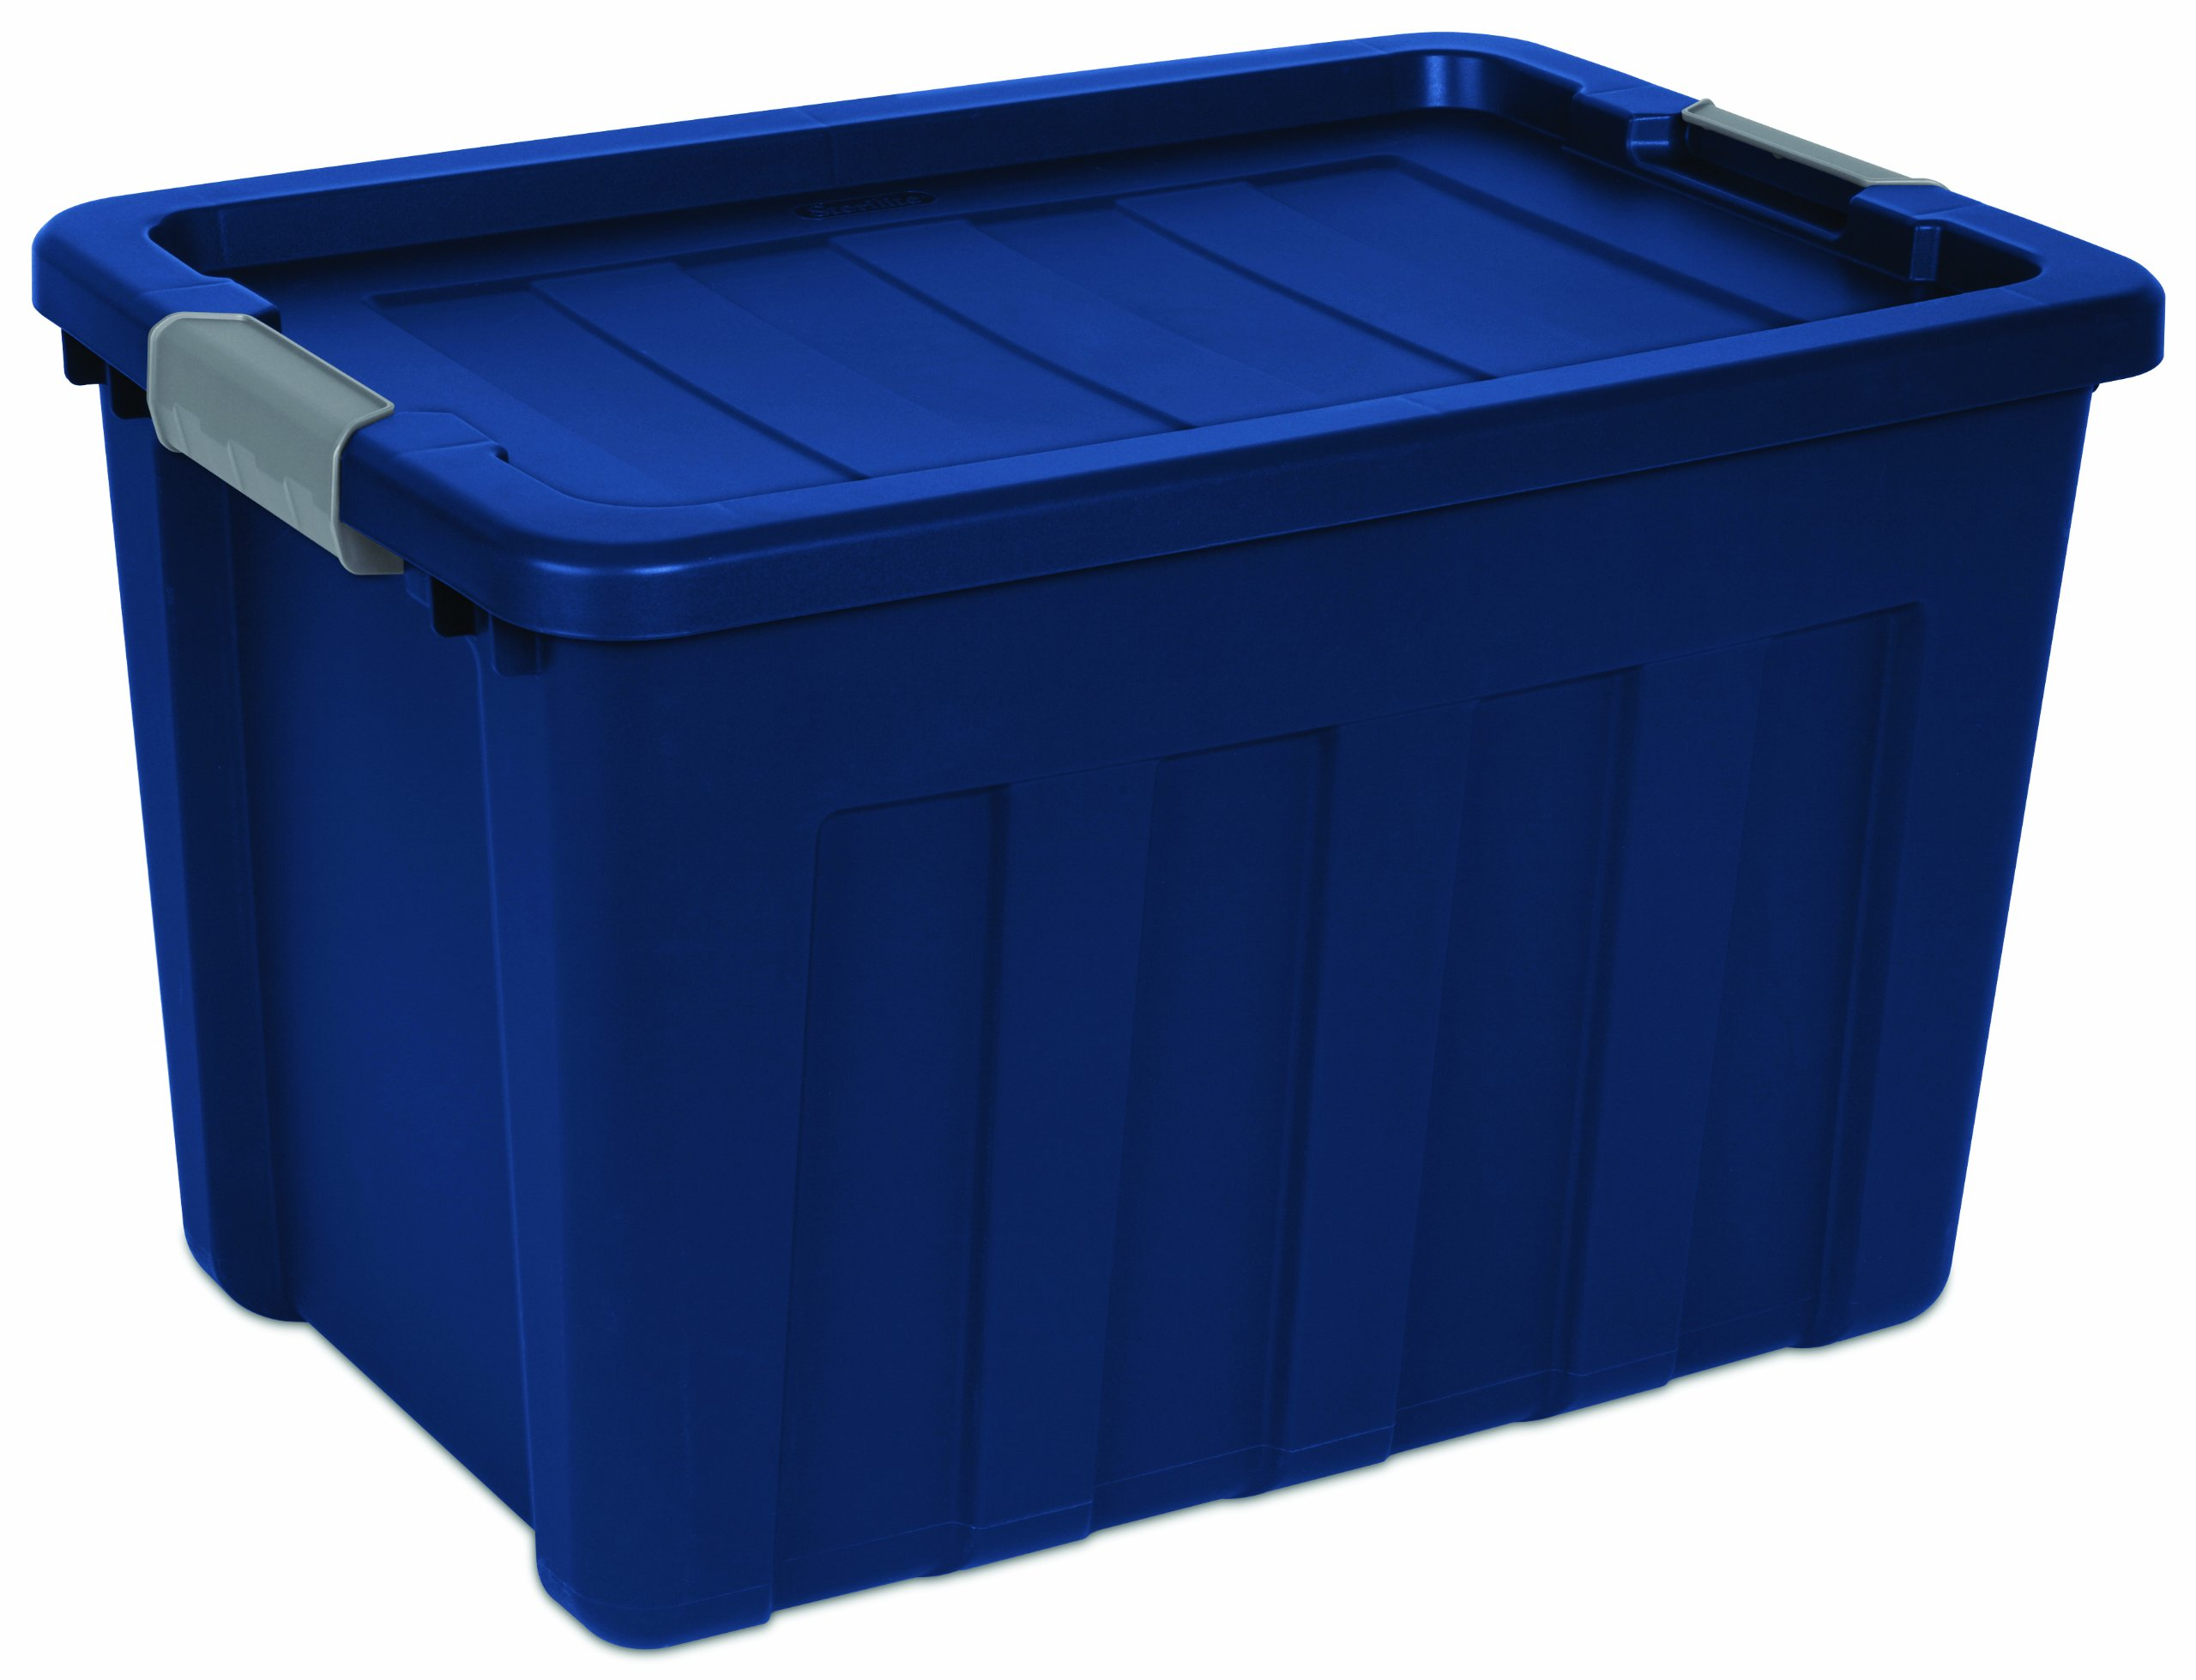 Sterilite 16877404 25 Gallon Ultra Tote, True Blue lid & base with Titanium latches, 4-Pack